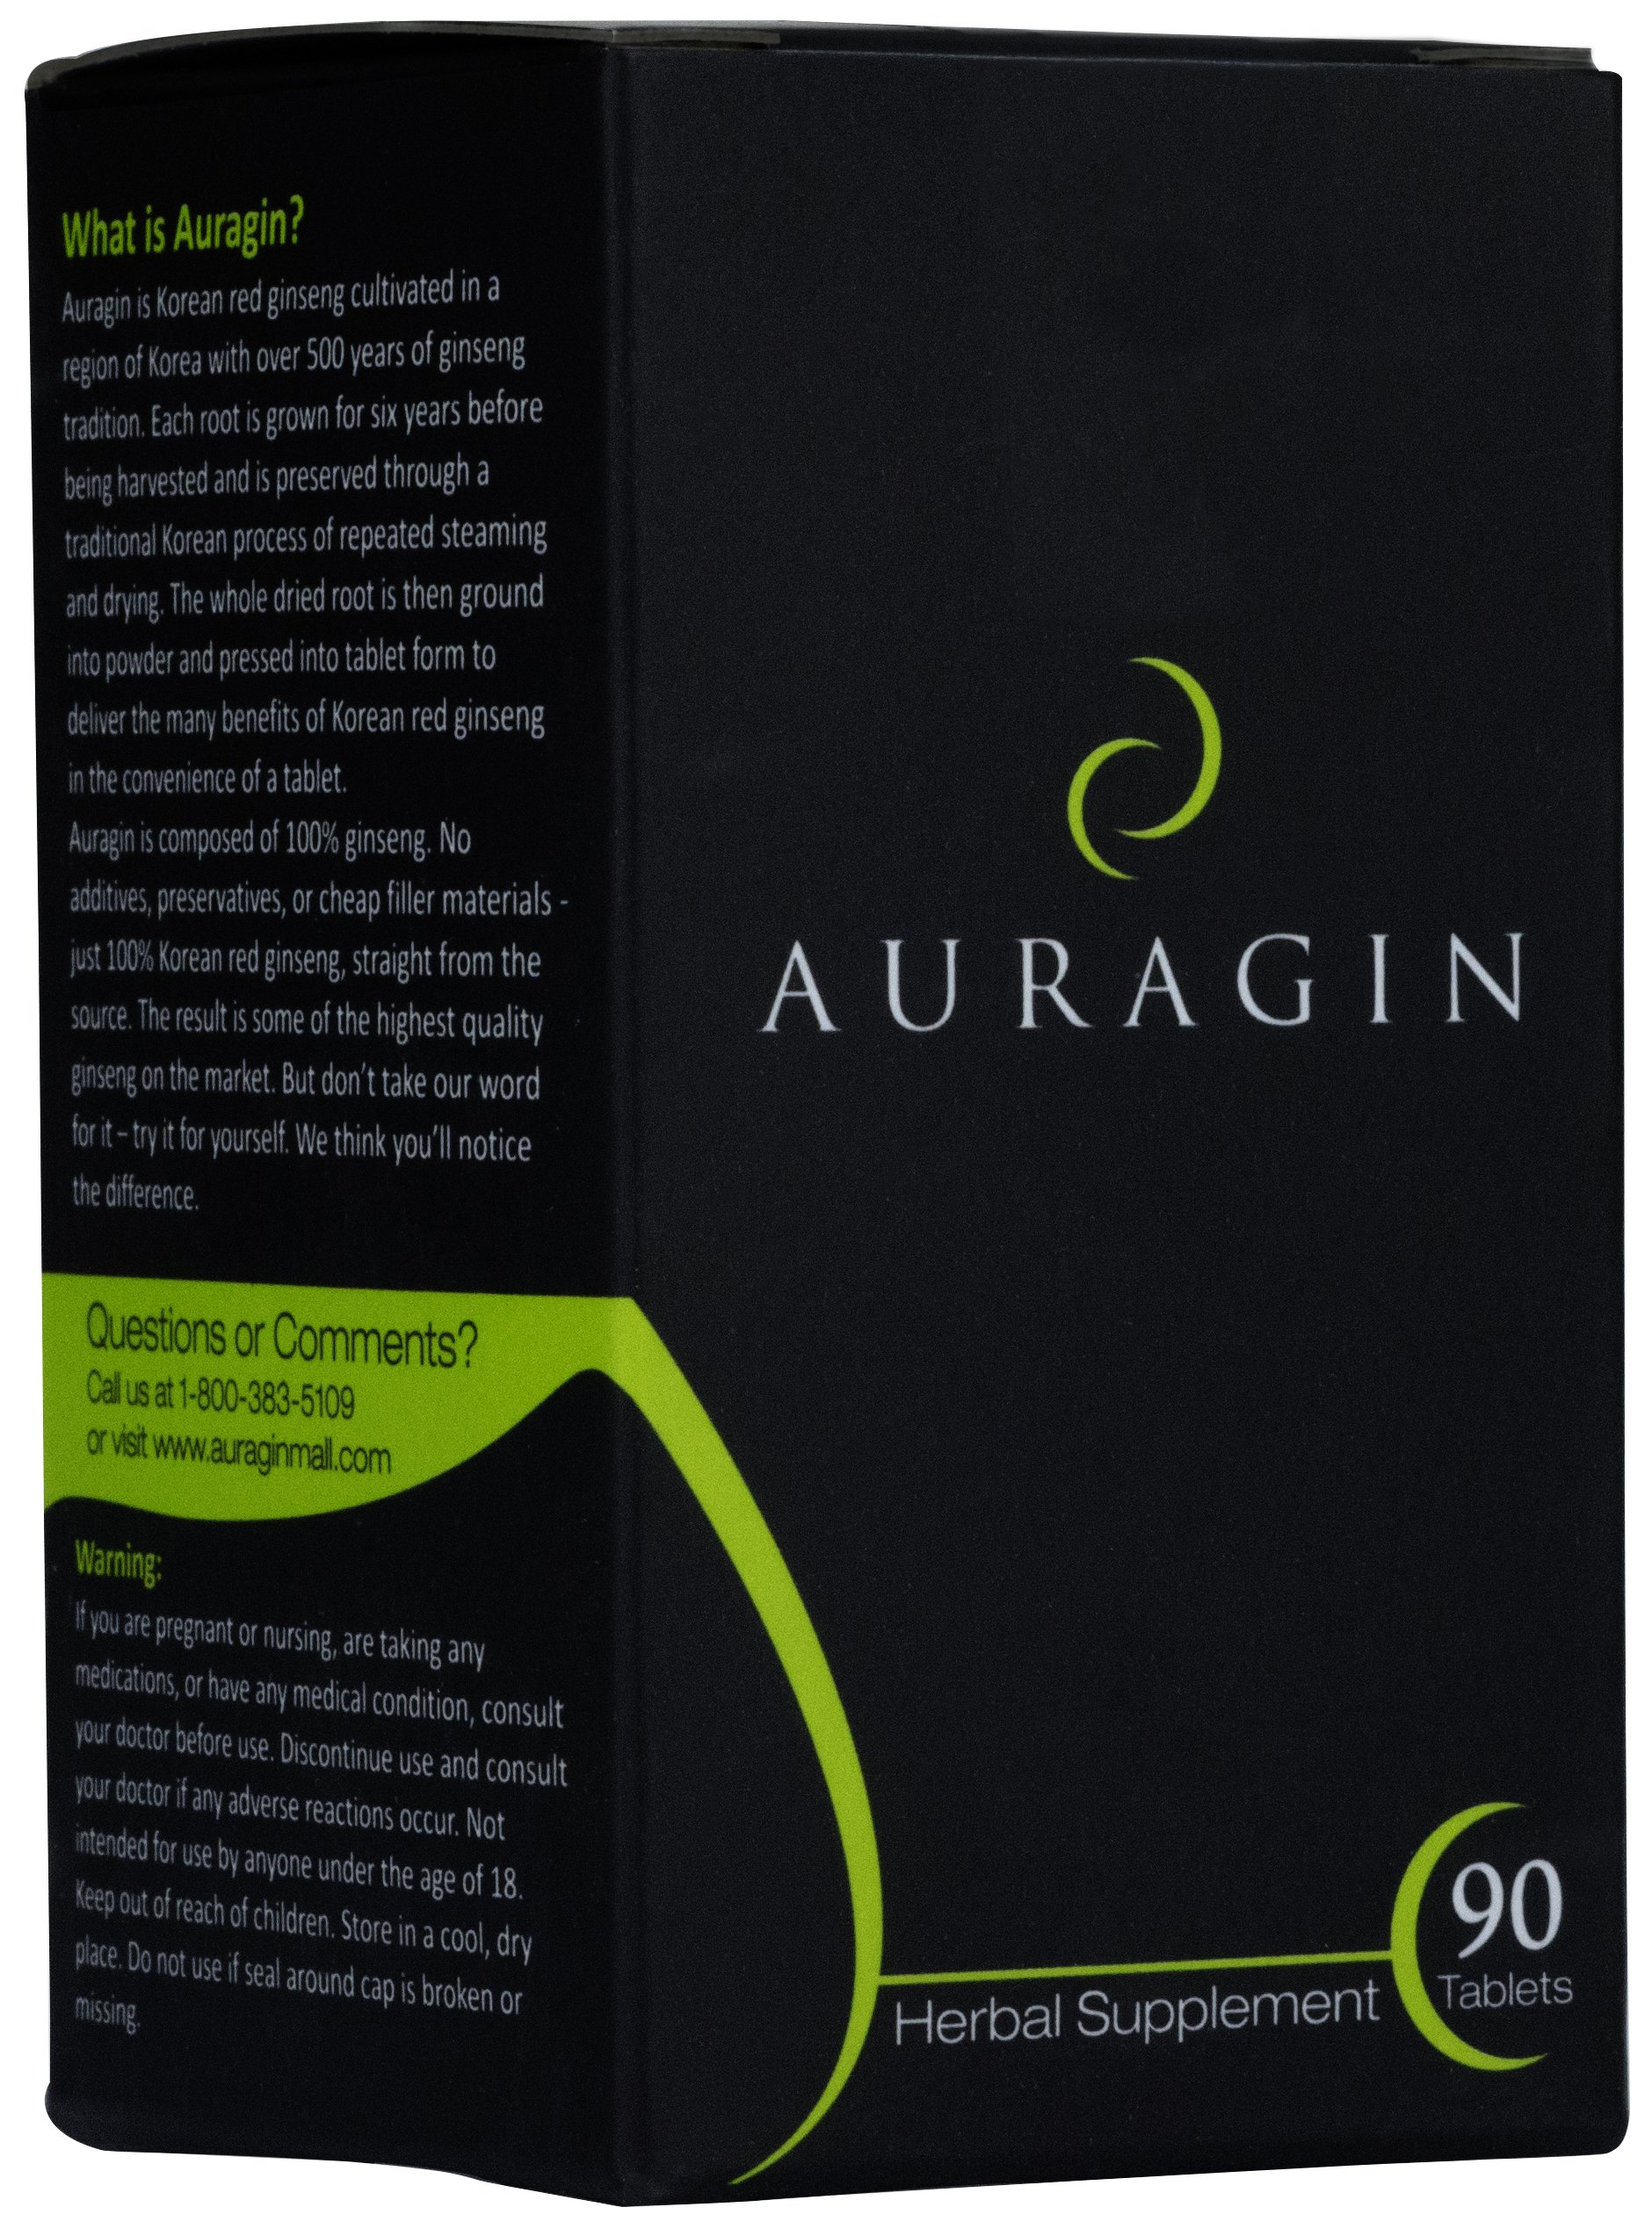 Auragin Authentic Korean Red Ginseng – Made in Korea – 6 Year Roots – No Additives or Other Ingredients – 100% Red Panax Ginseng in Every Tablet